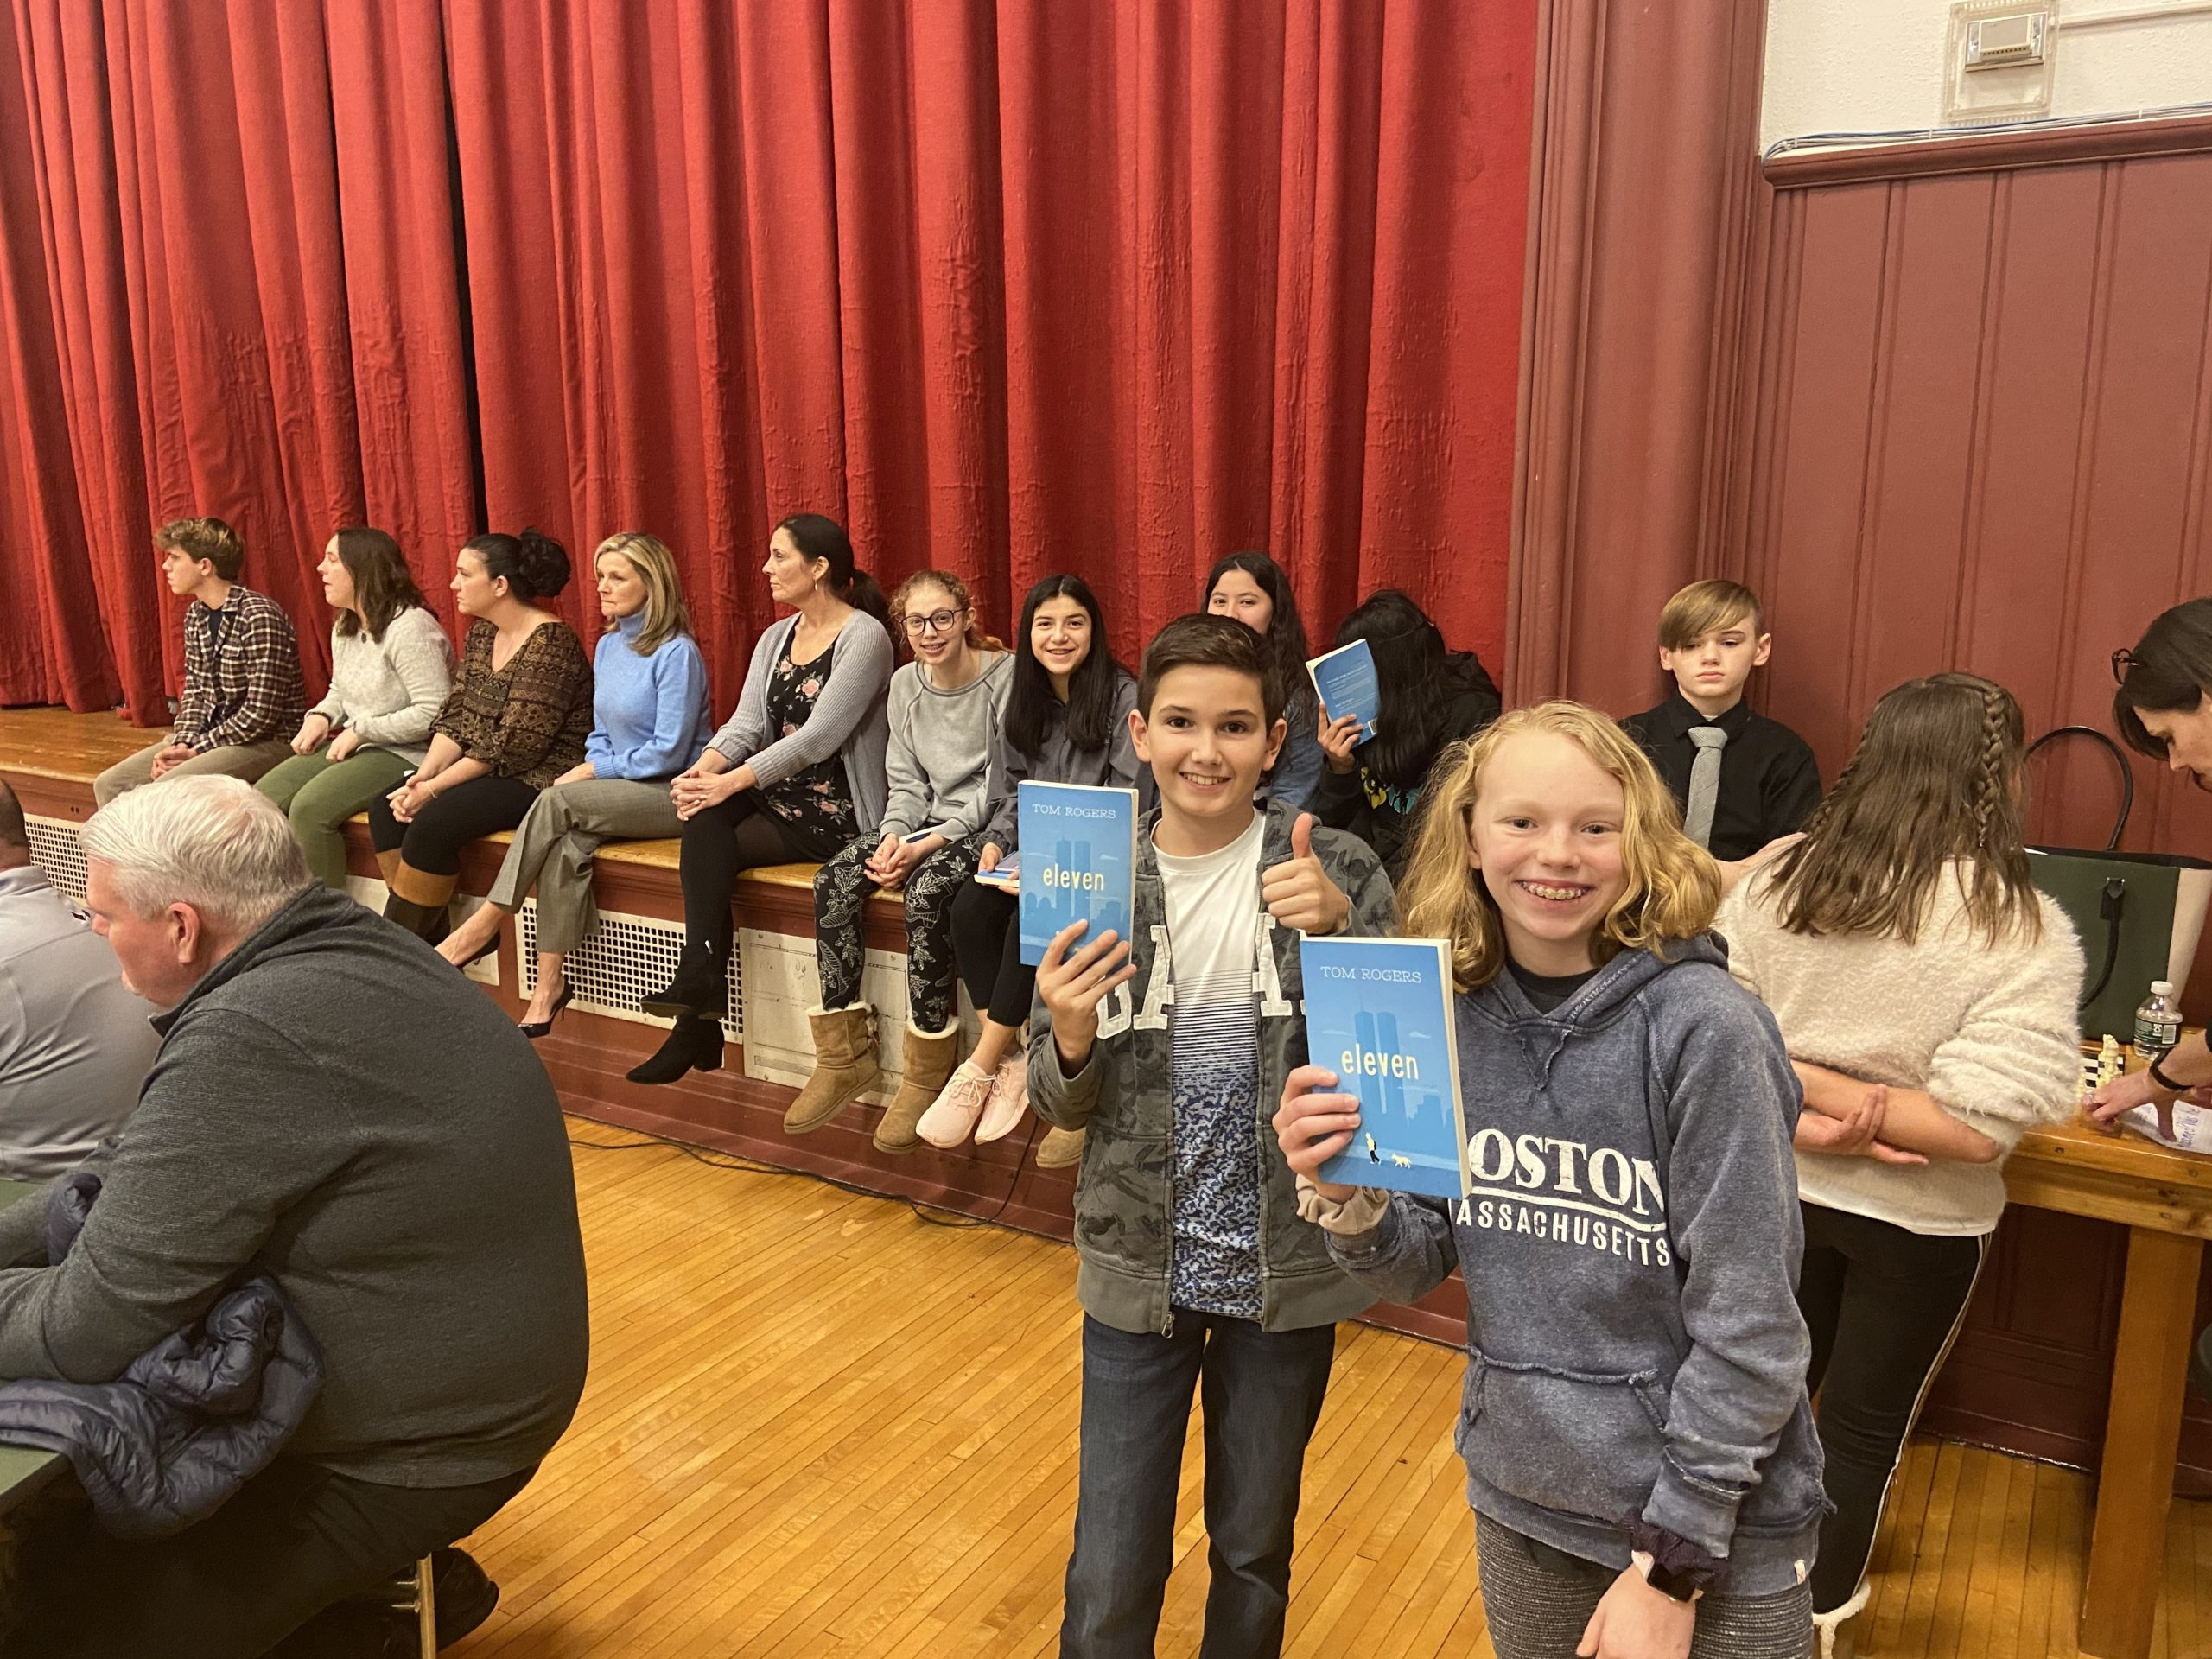 """Westhampton Beach Middle School recently hosted a  community read event featuring the book """"Eleven"""" by Tom Rogers, culminating a monthlong reading of the book and a Skype talk with the author during which students and community members asked Mr. Rogers about his writing and his life."""